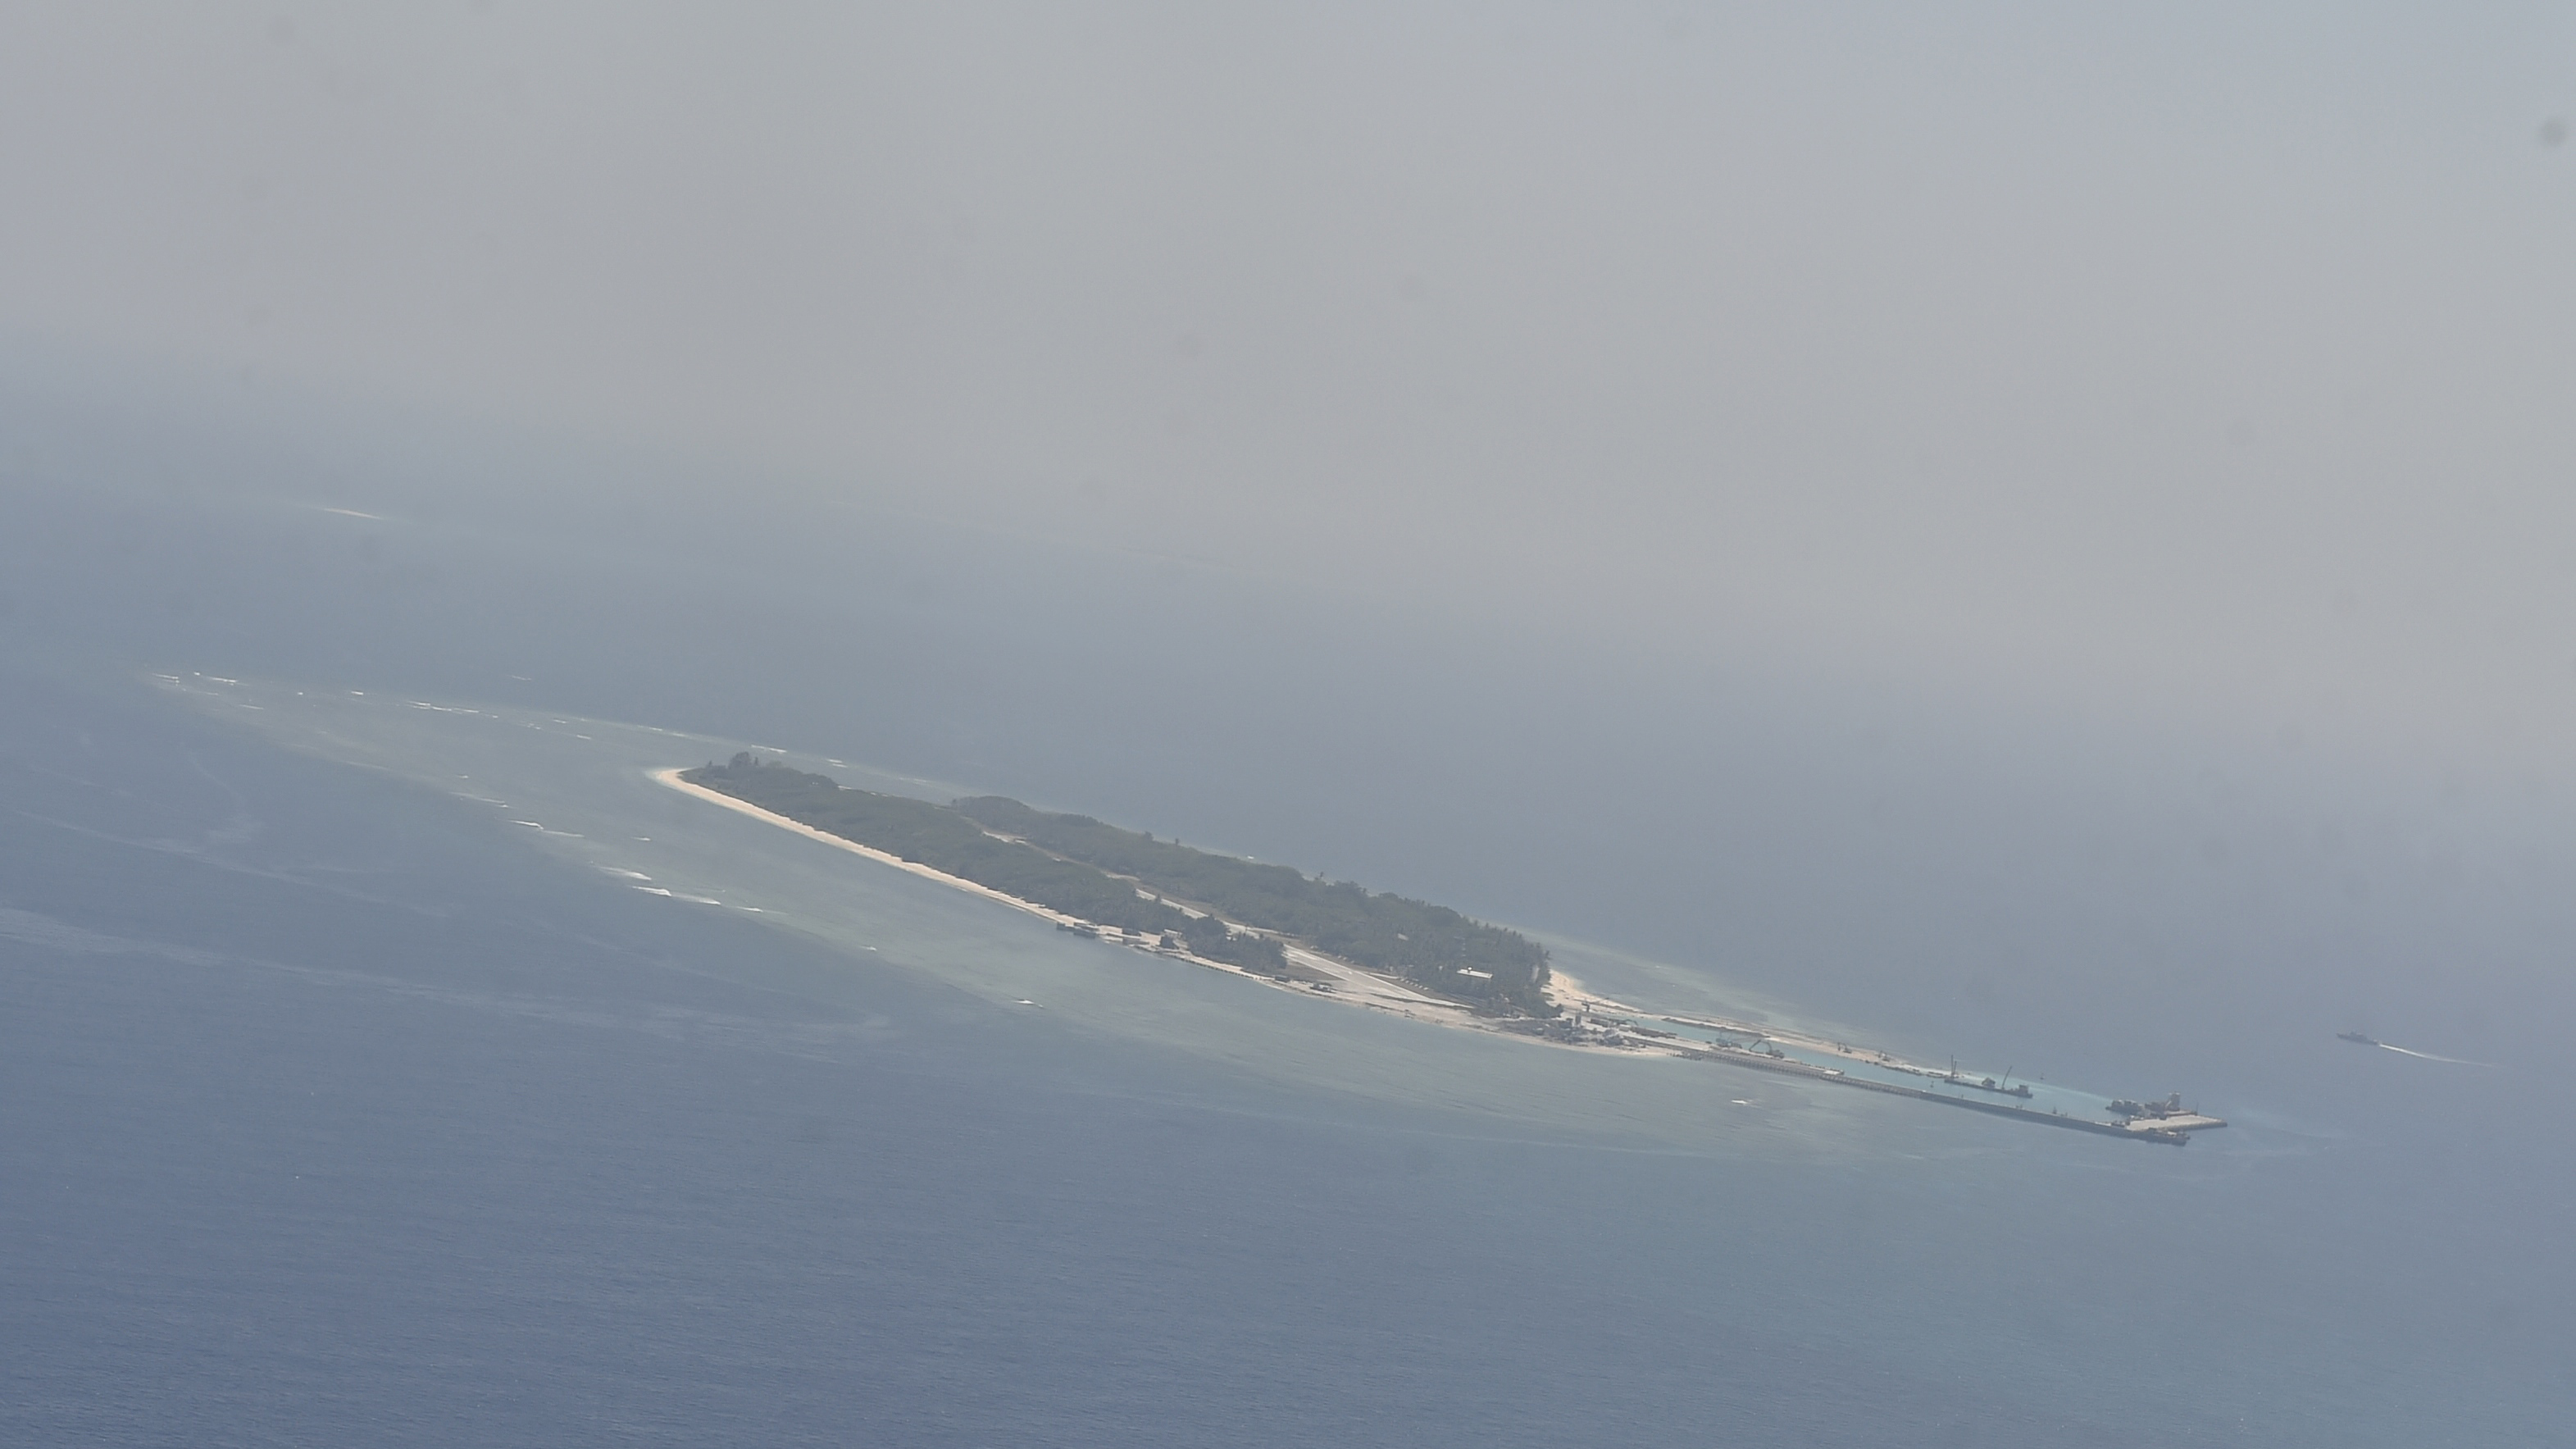 China has no basis to claim South China Sea: Tribunal